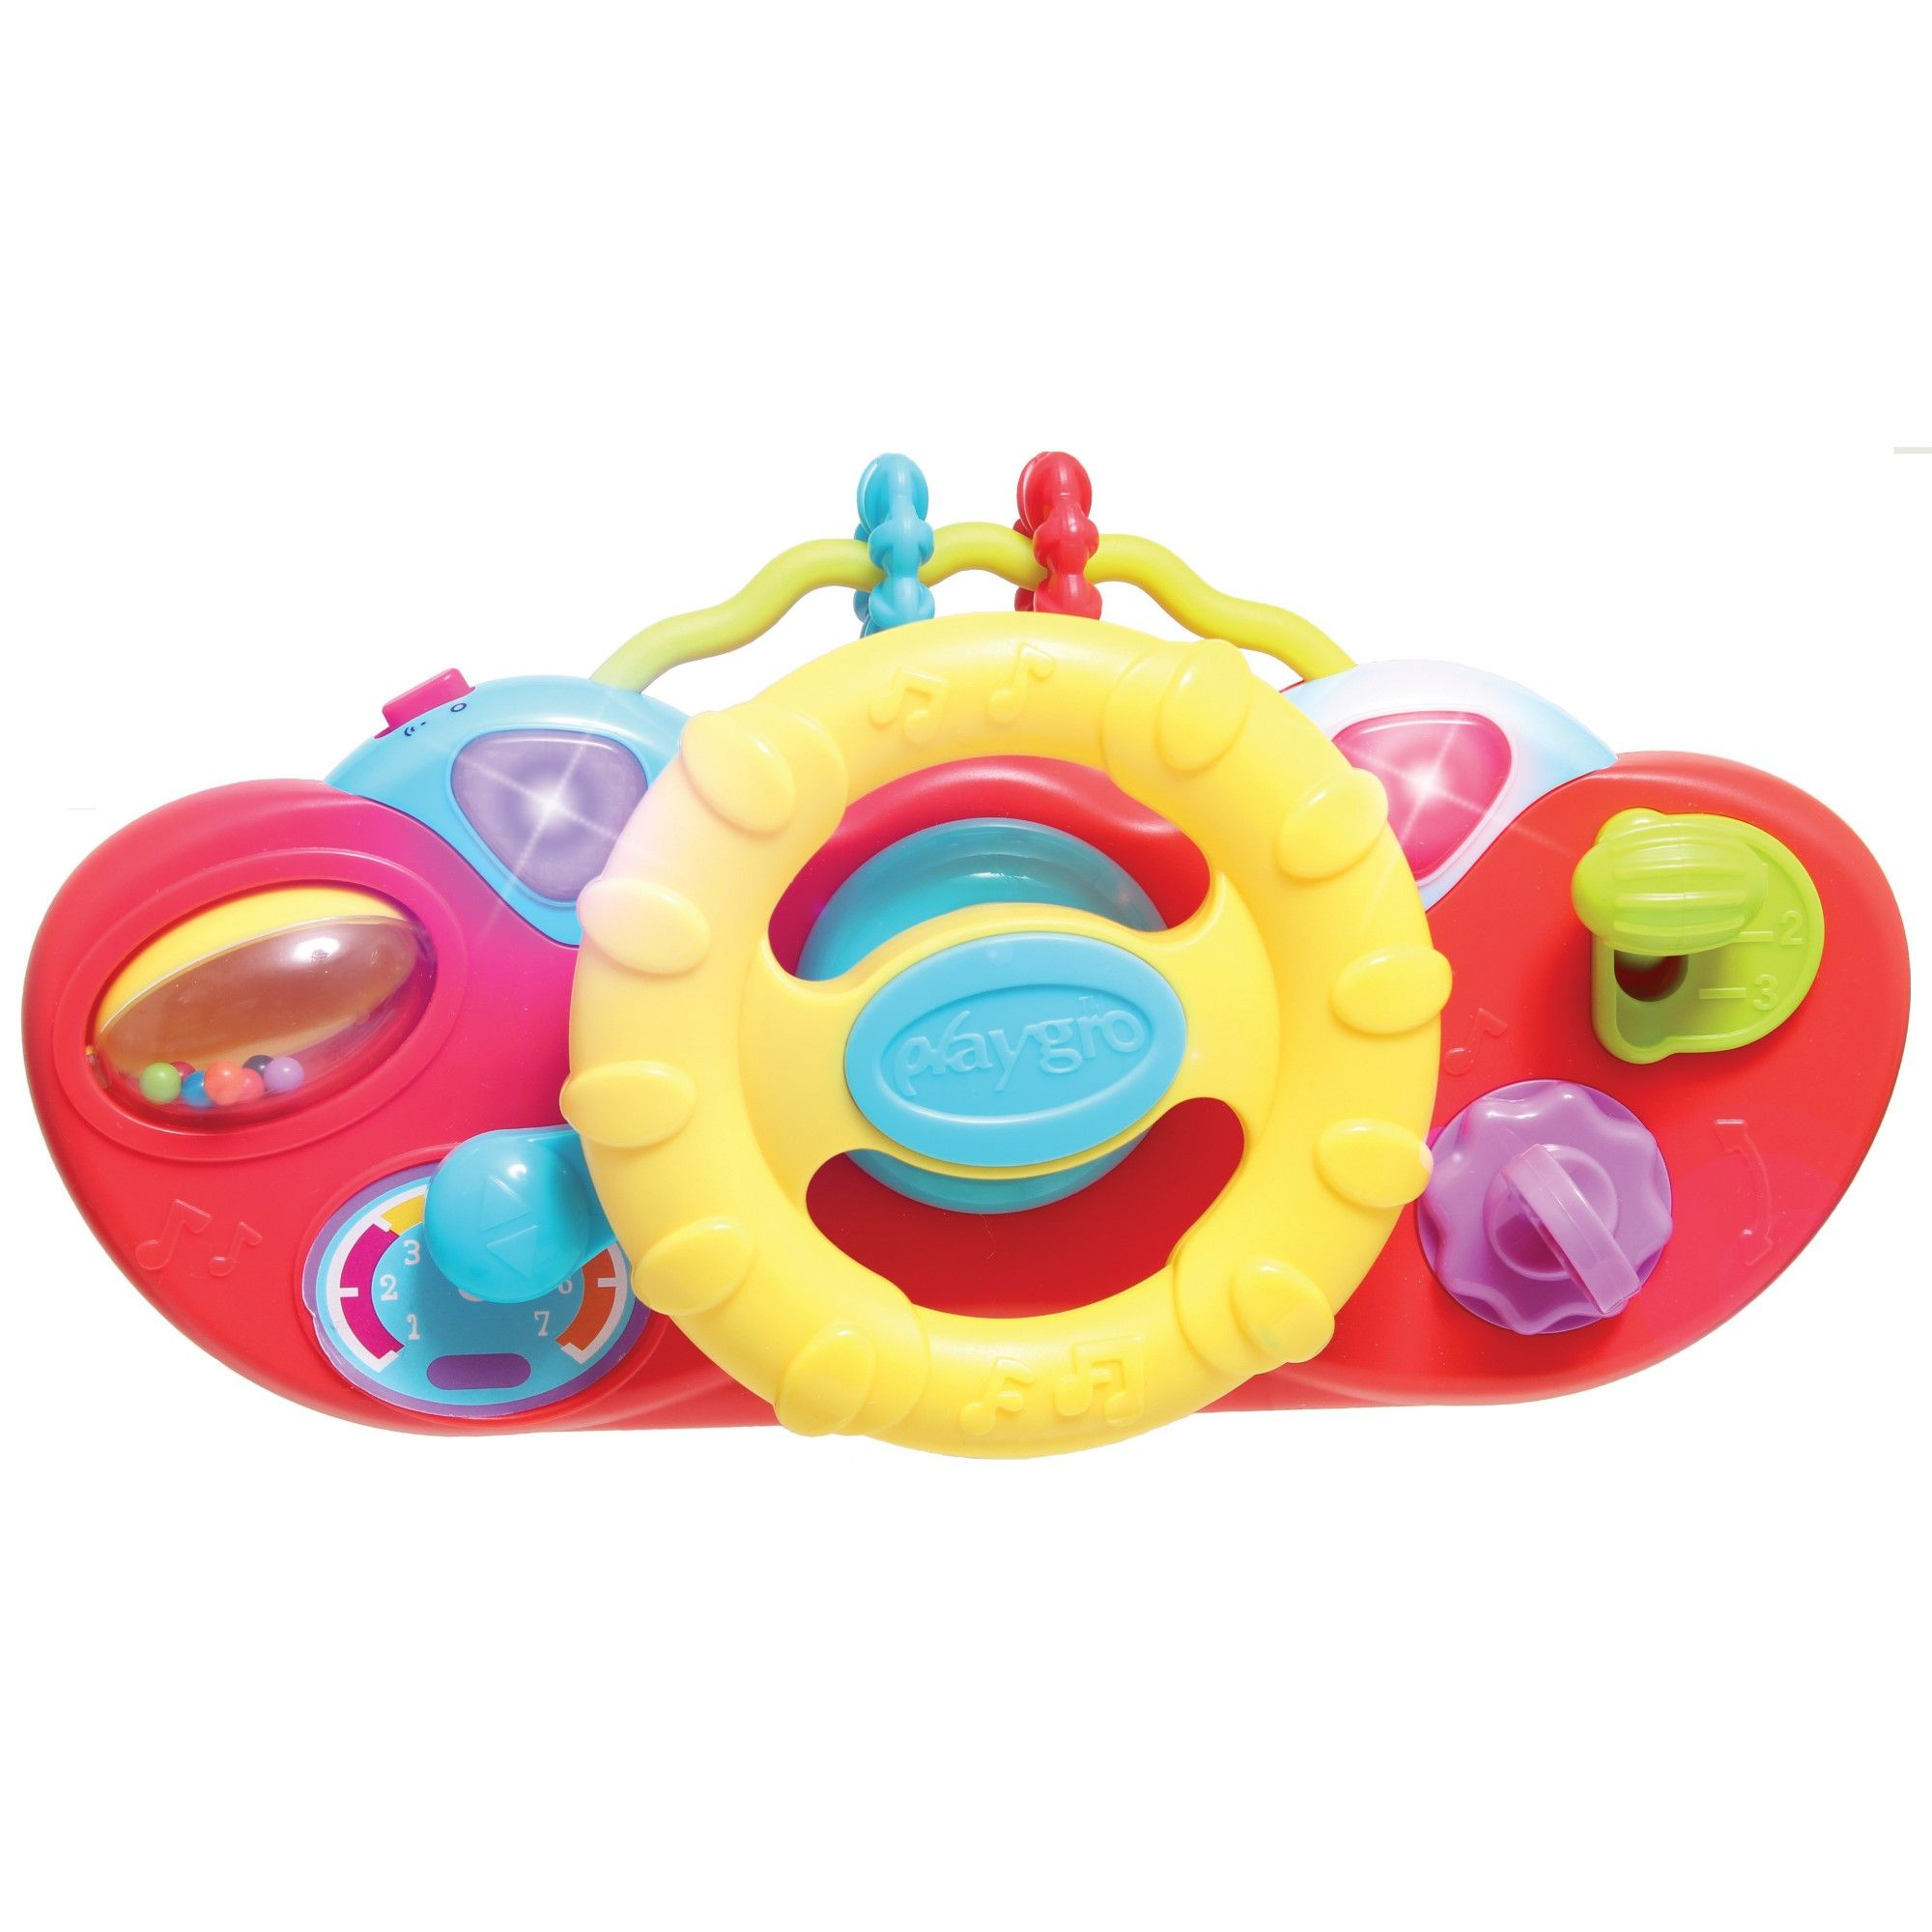 Playgro Music Drive and Go Learning toys for toddlers